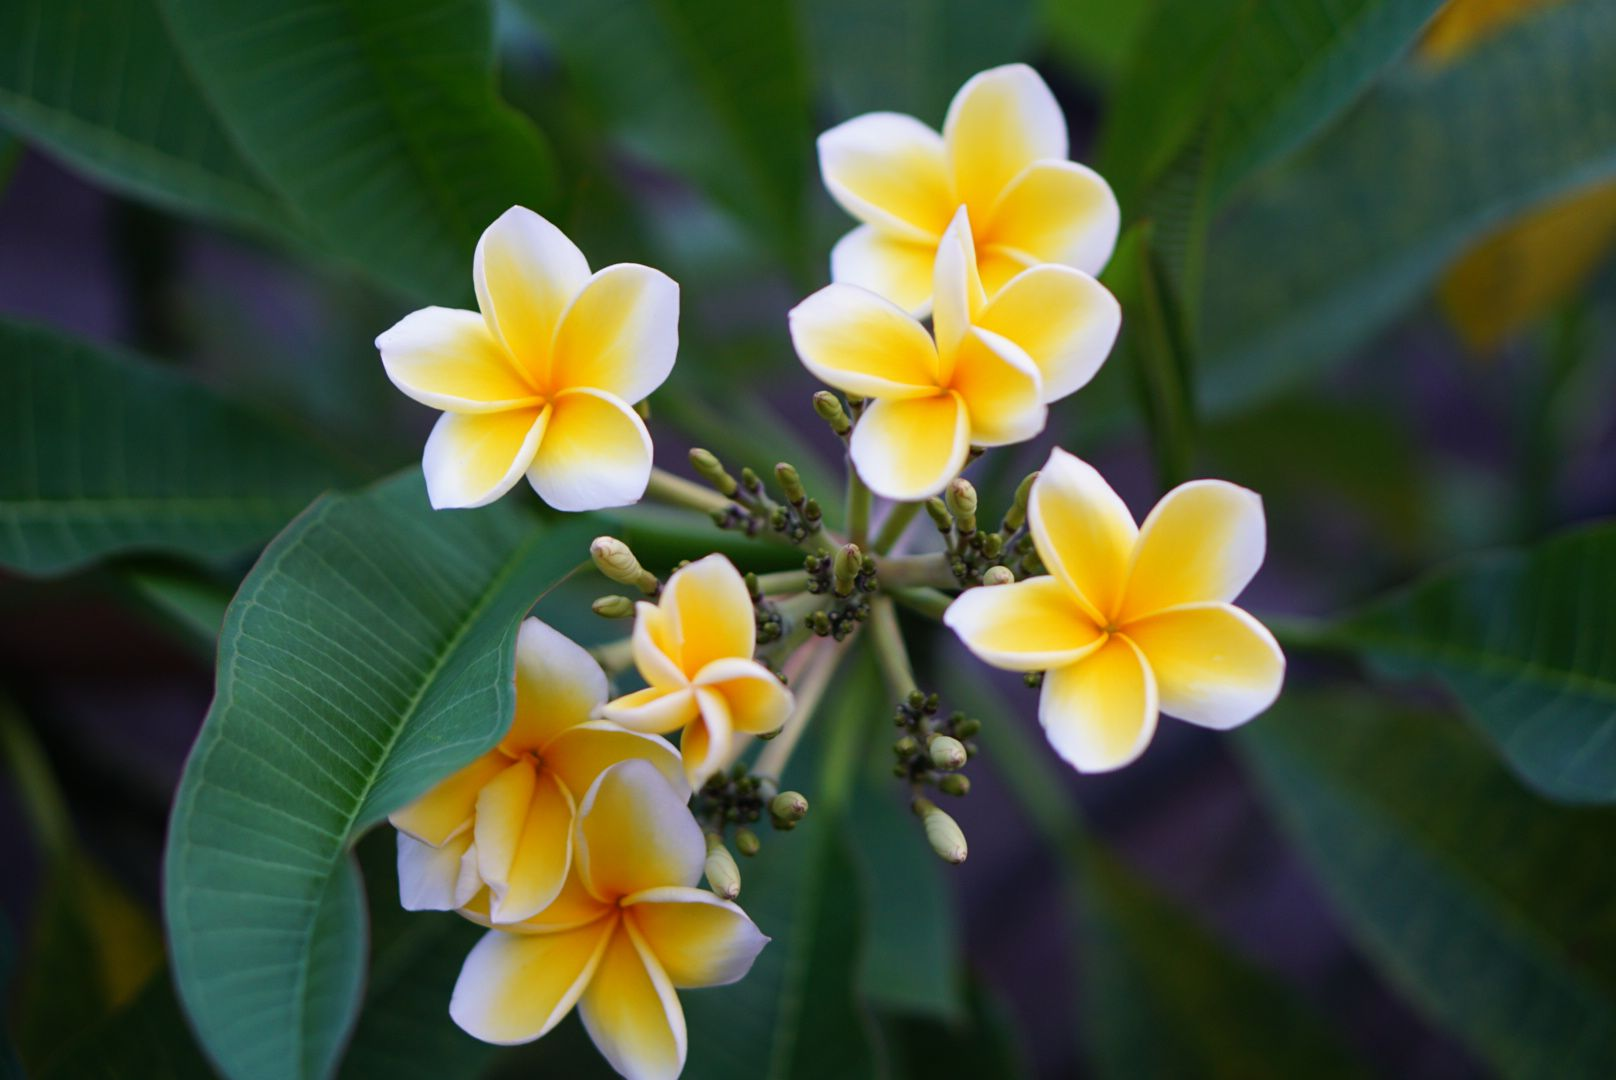 White frangipani plant with swirl-like flowers with yellow petals and white edges closeup